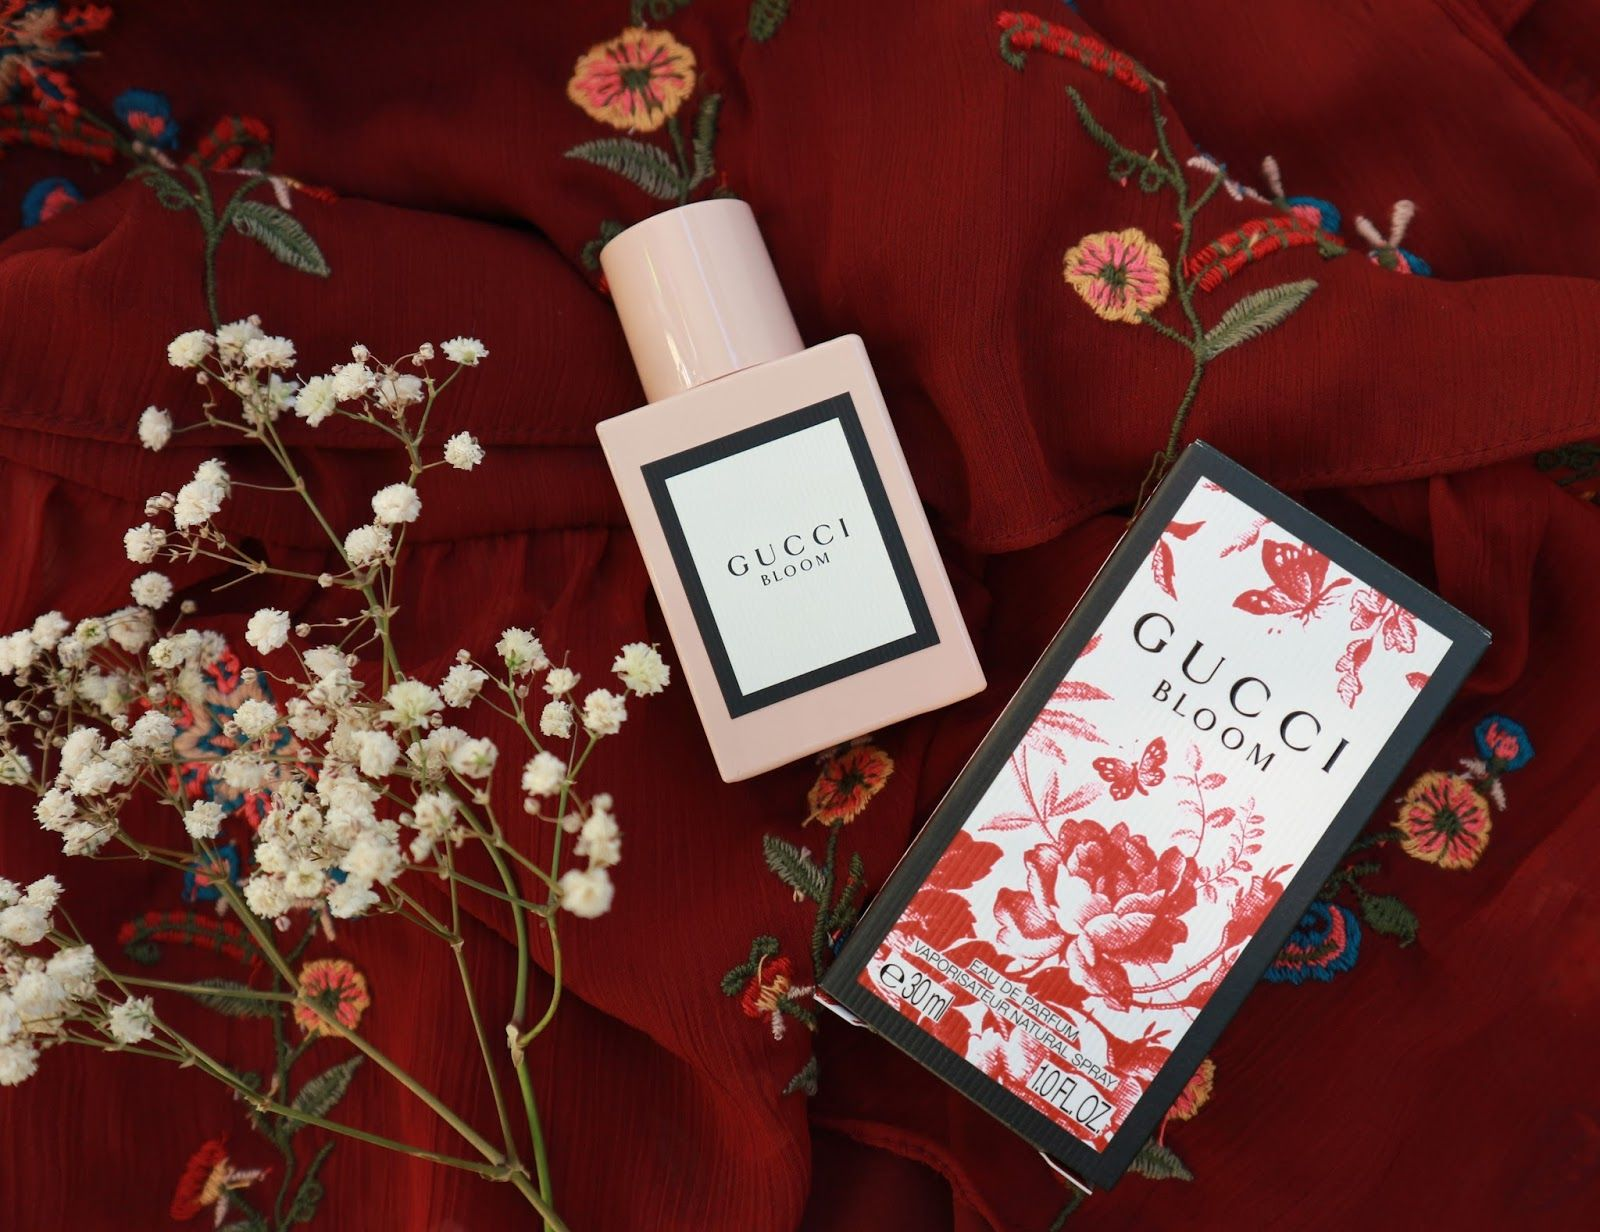 Gucci Bloom Anotherkindofbeautyblog Beautyblogger Beautyblog